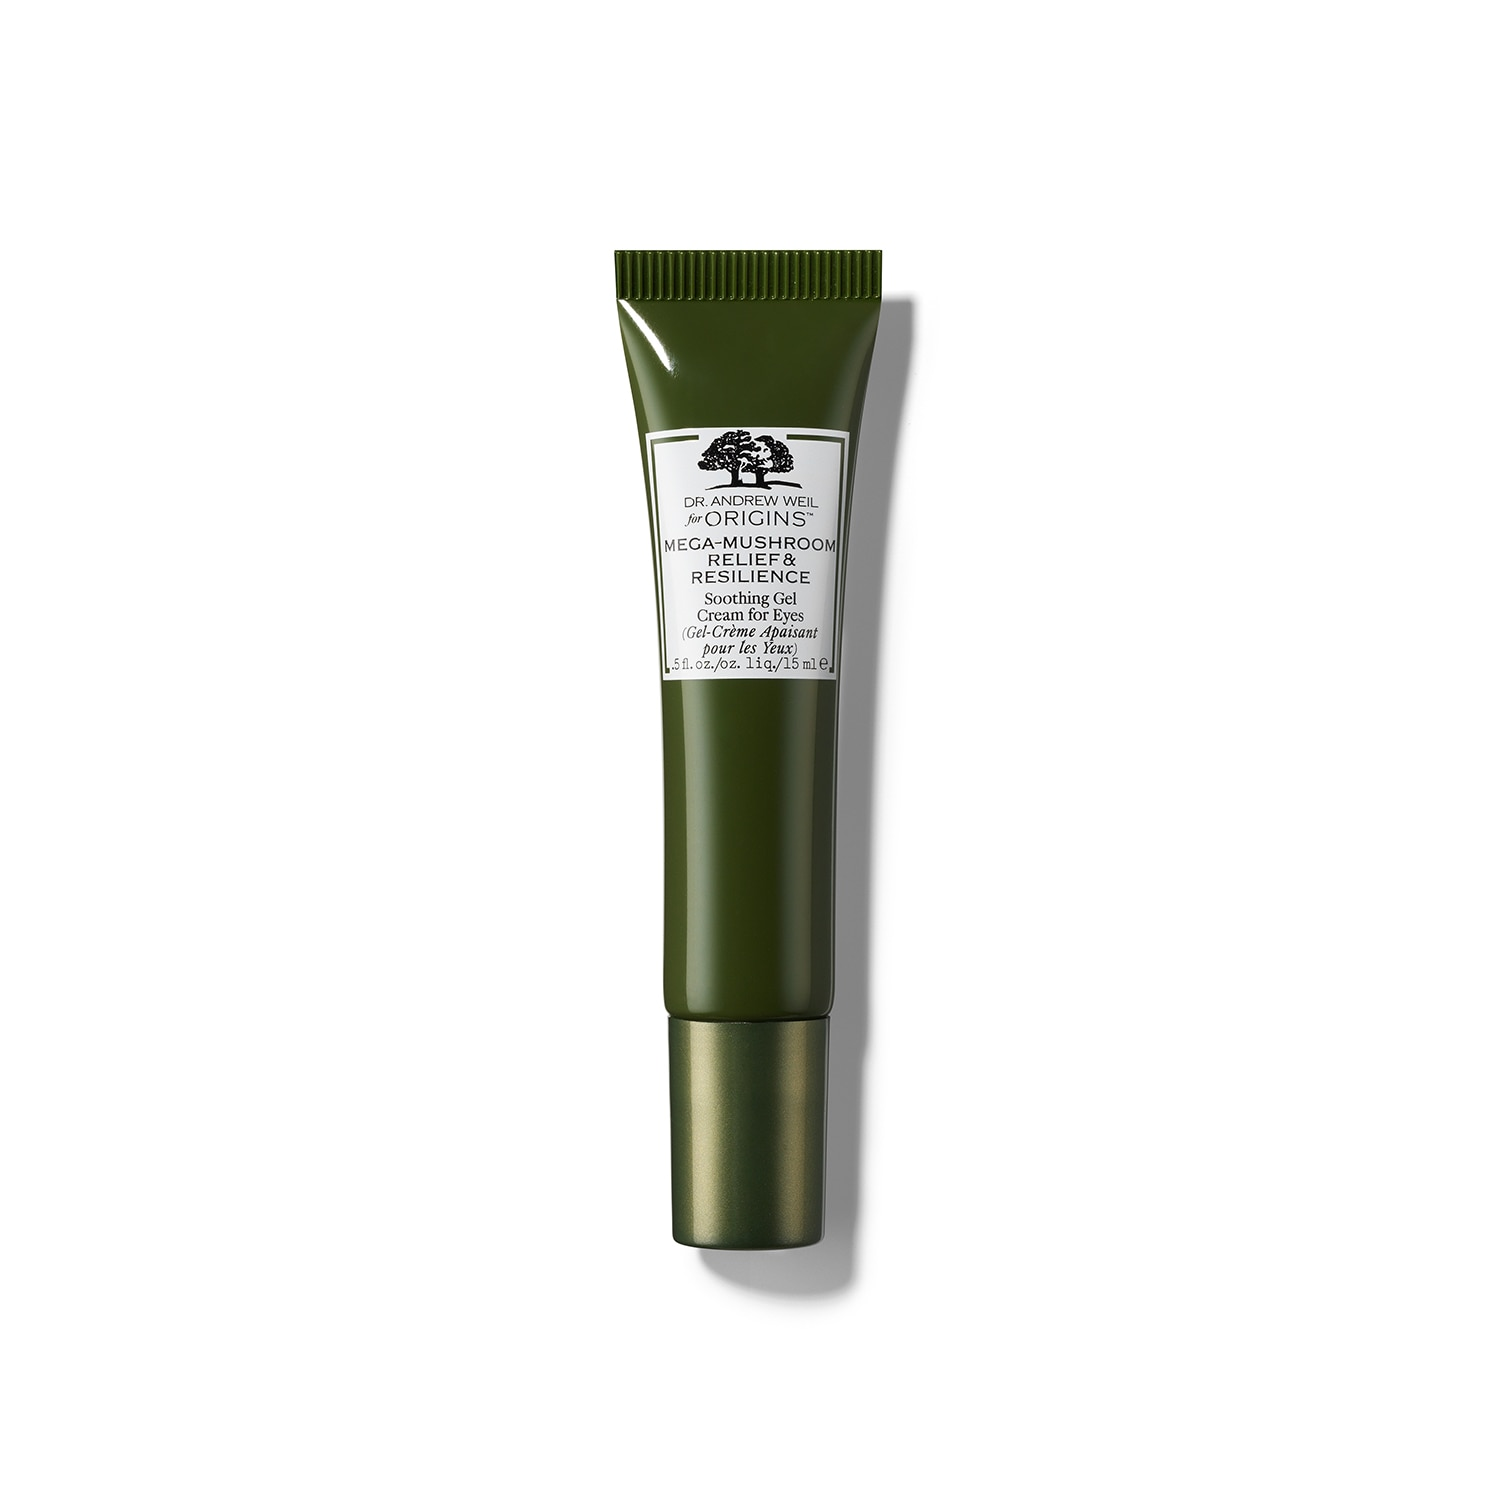 ORIGINS - DR. WEIL MEGA-MUSHROOM™ RELIEF & RESILIENCE SOOTHING GEL CREAM FOR EYES